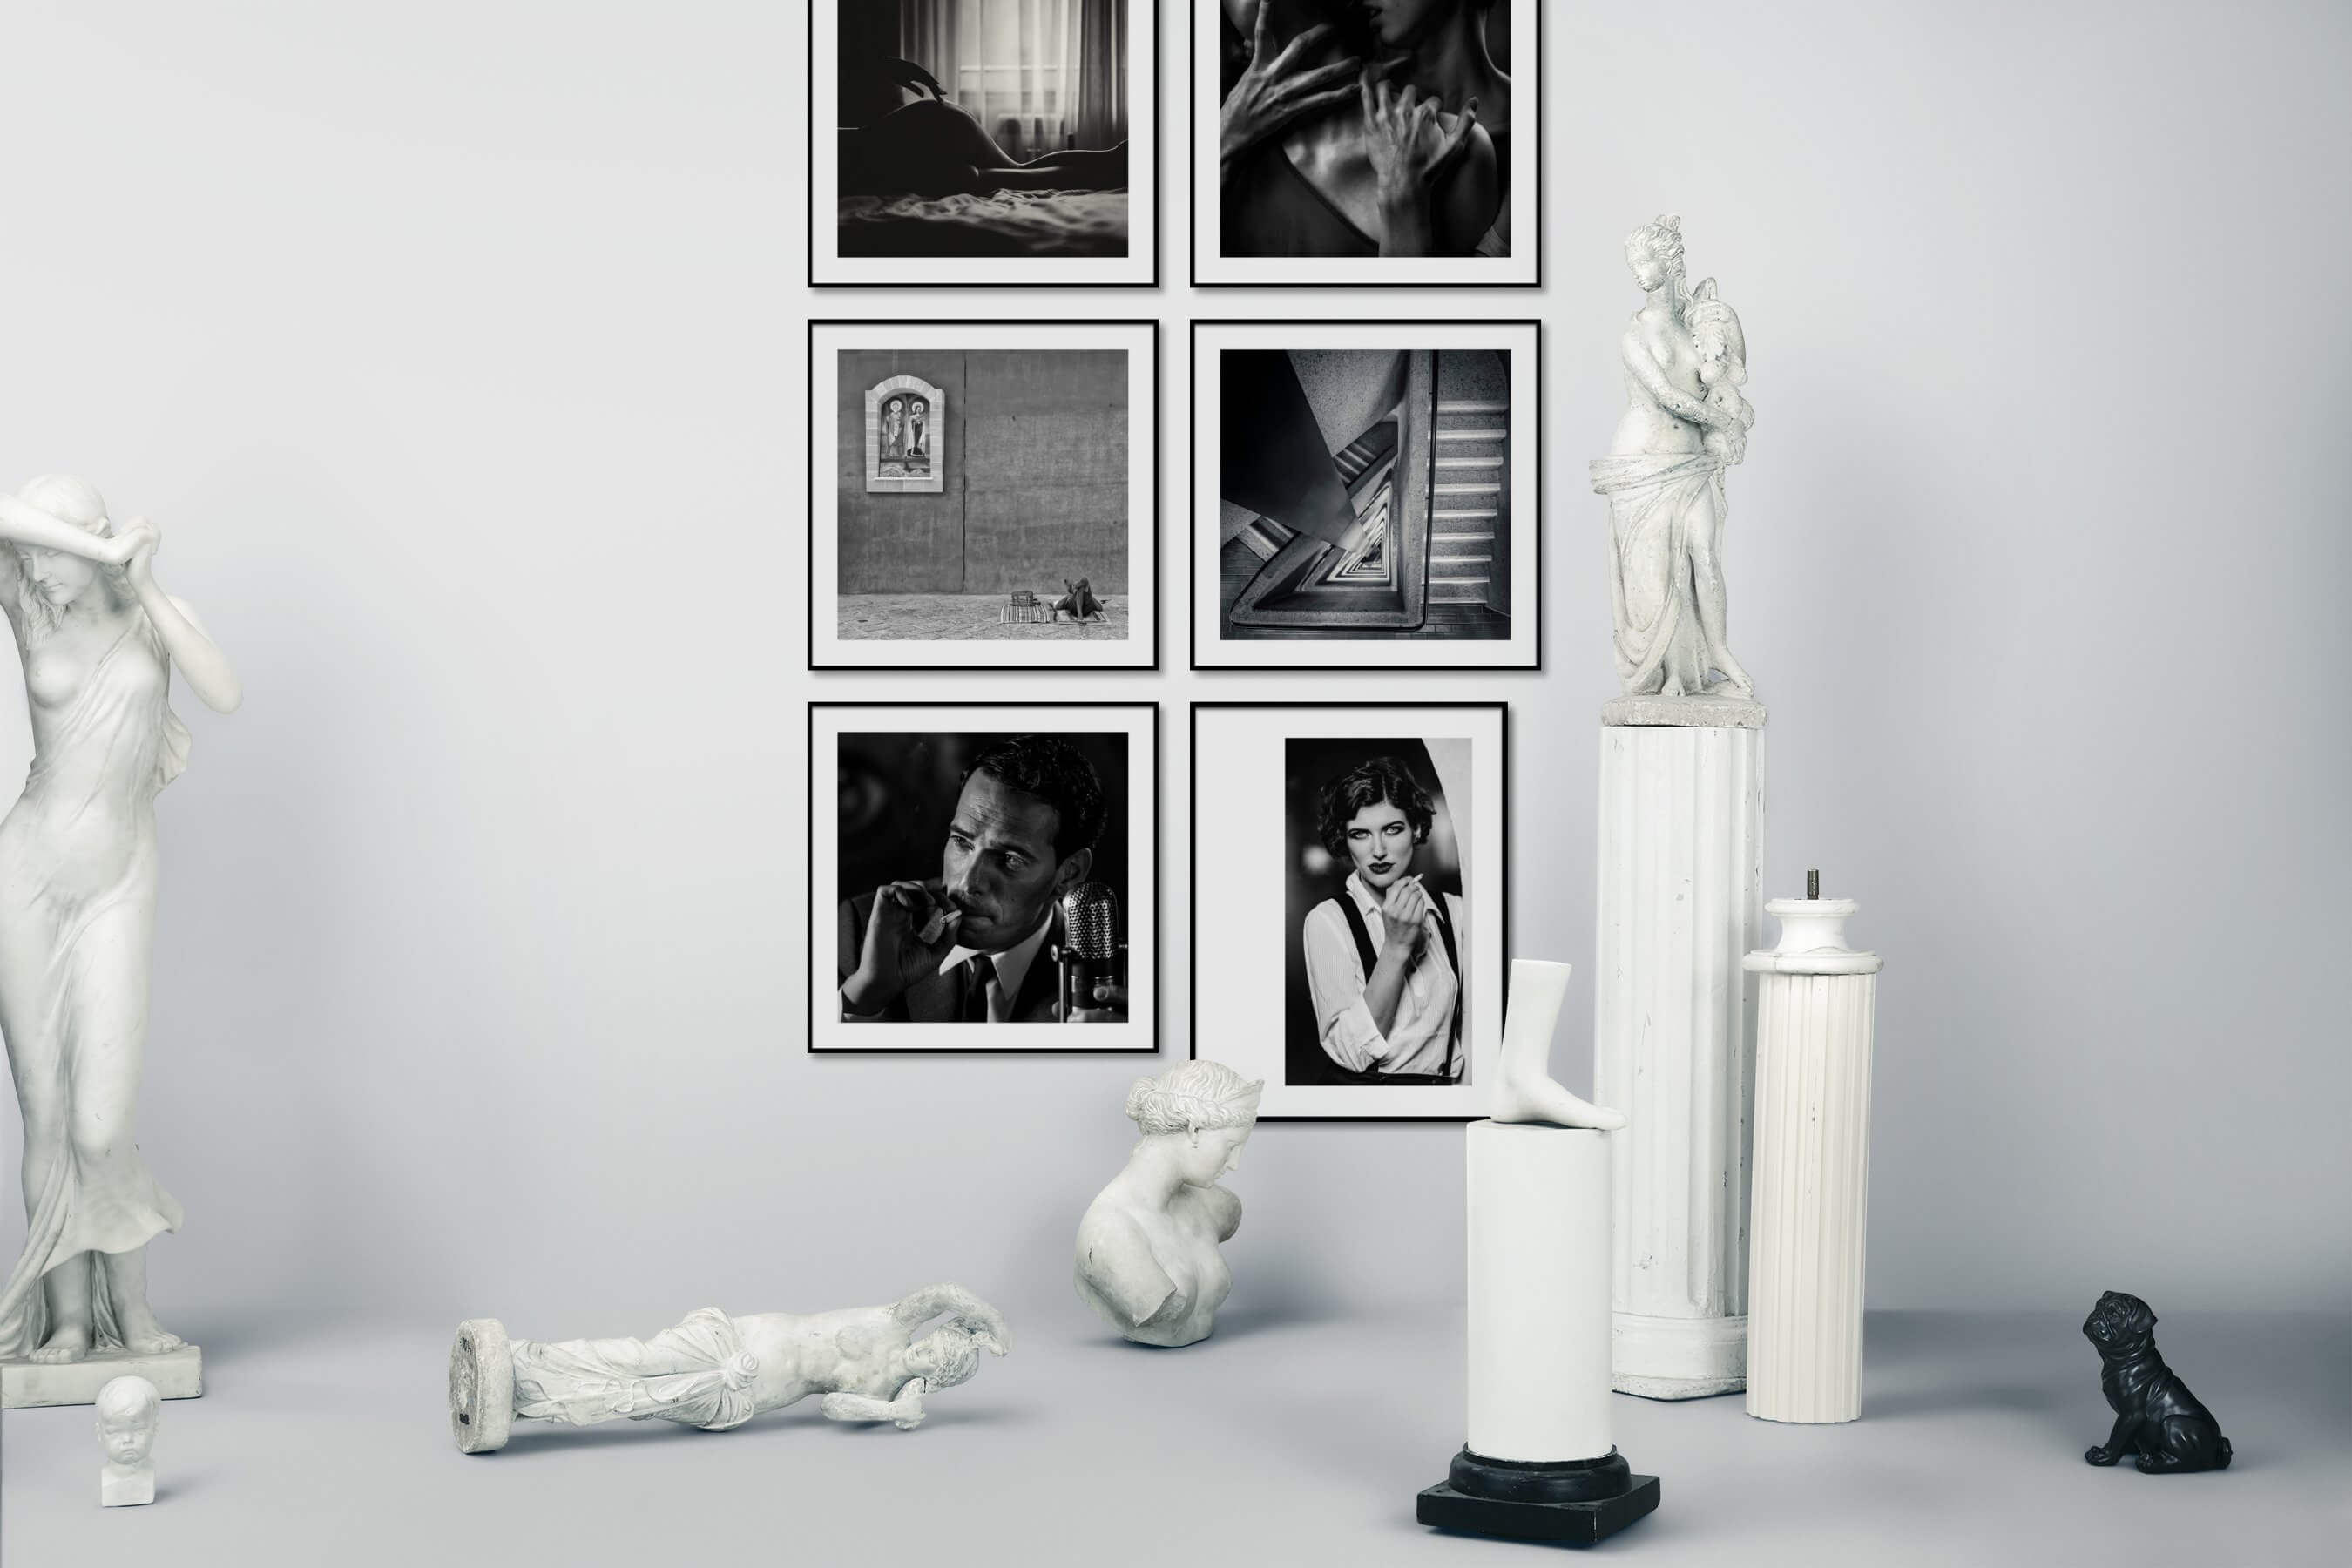 Gallery wall idea with six framed pictures arranged on a wall depicting Fashion & Beauty, Black & White, For the Moderate, and Vintage